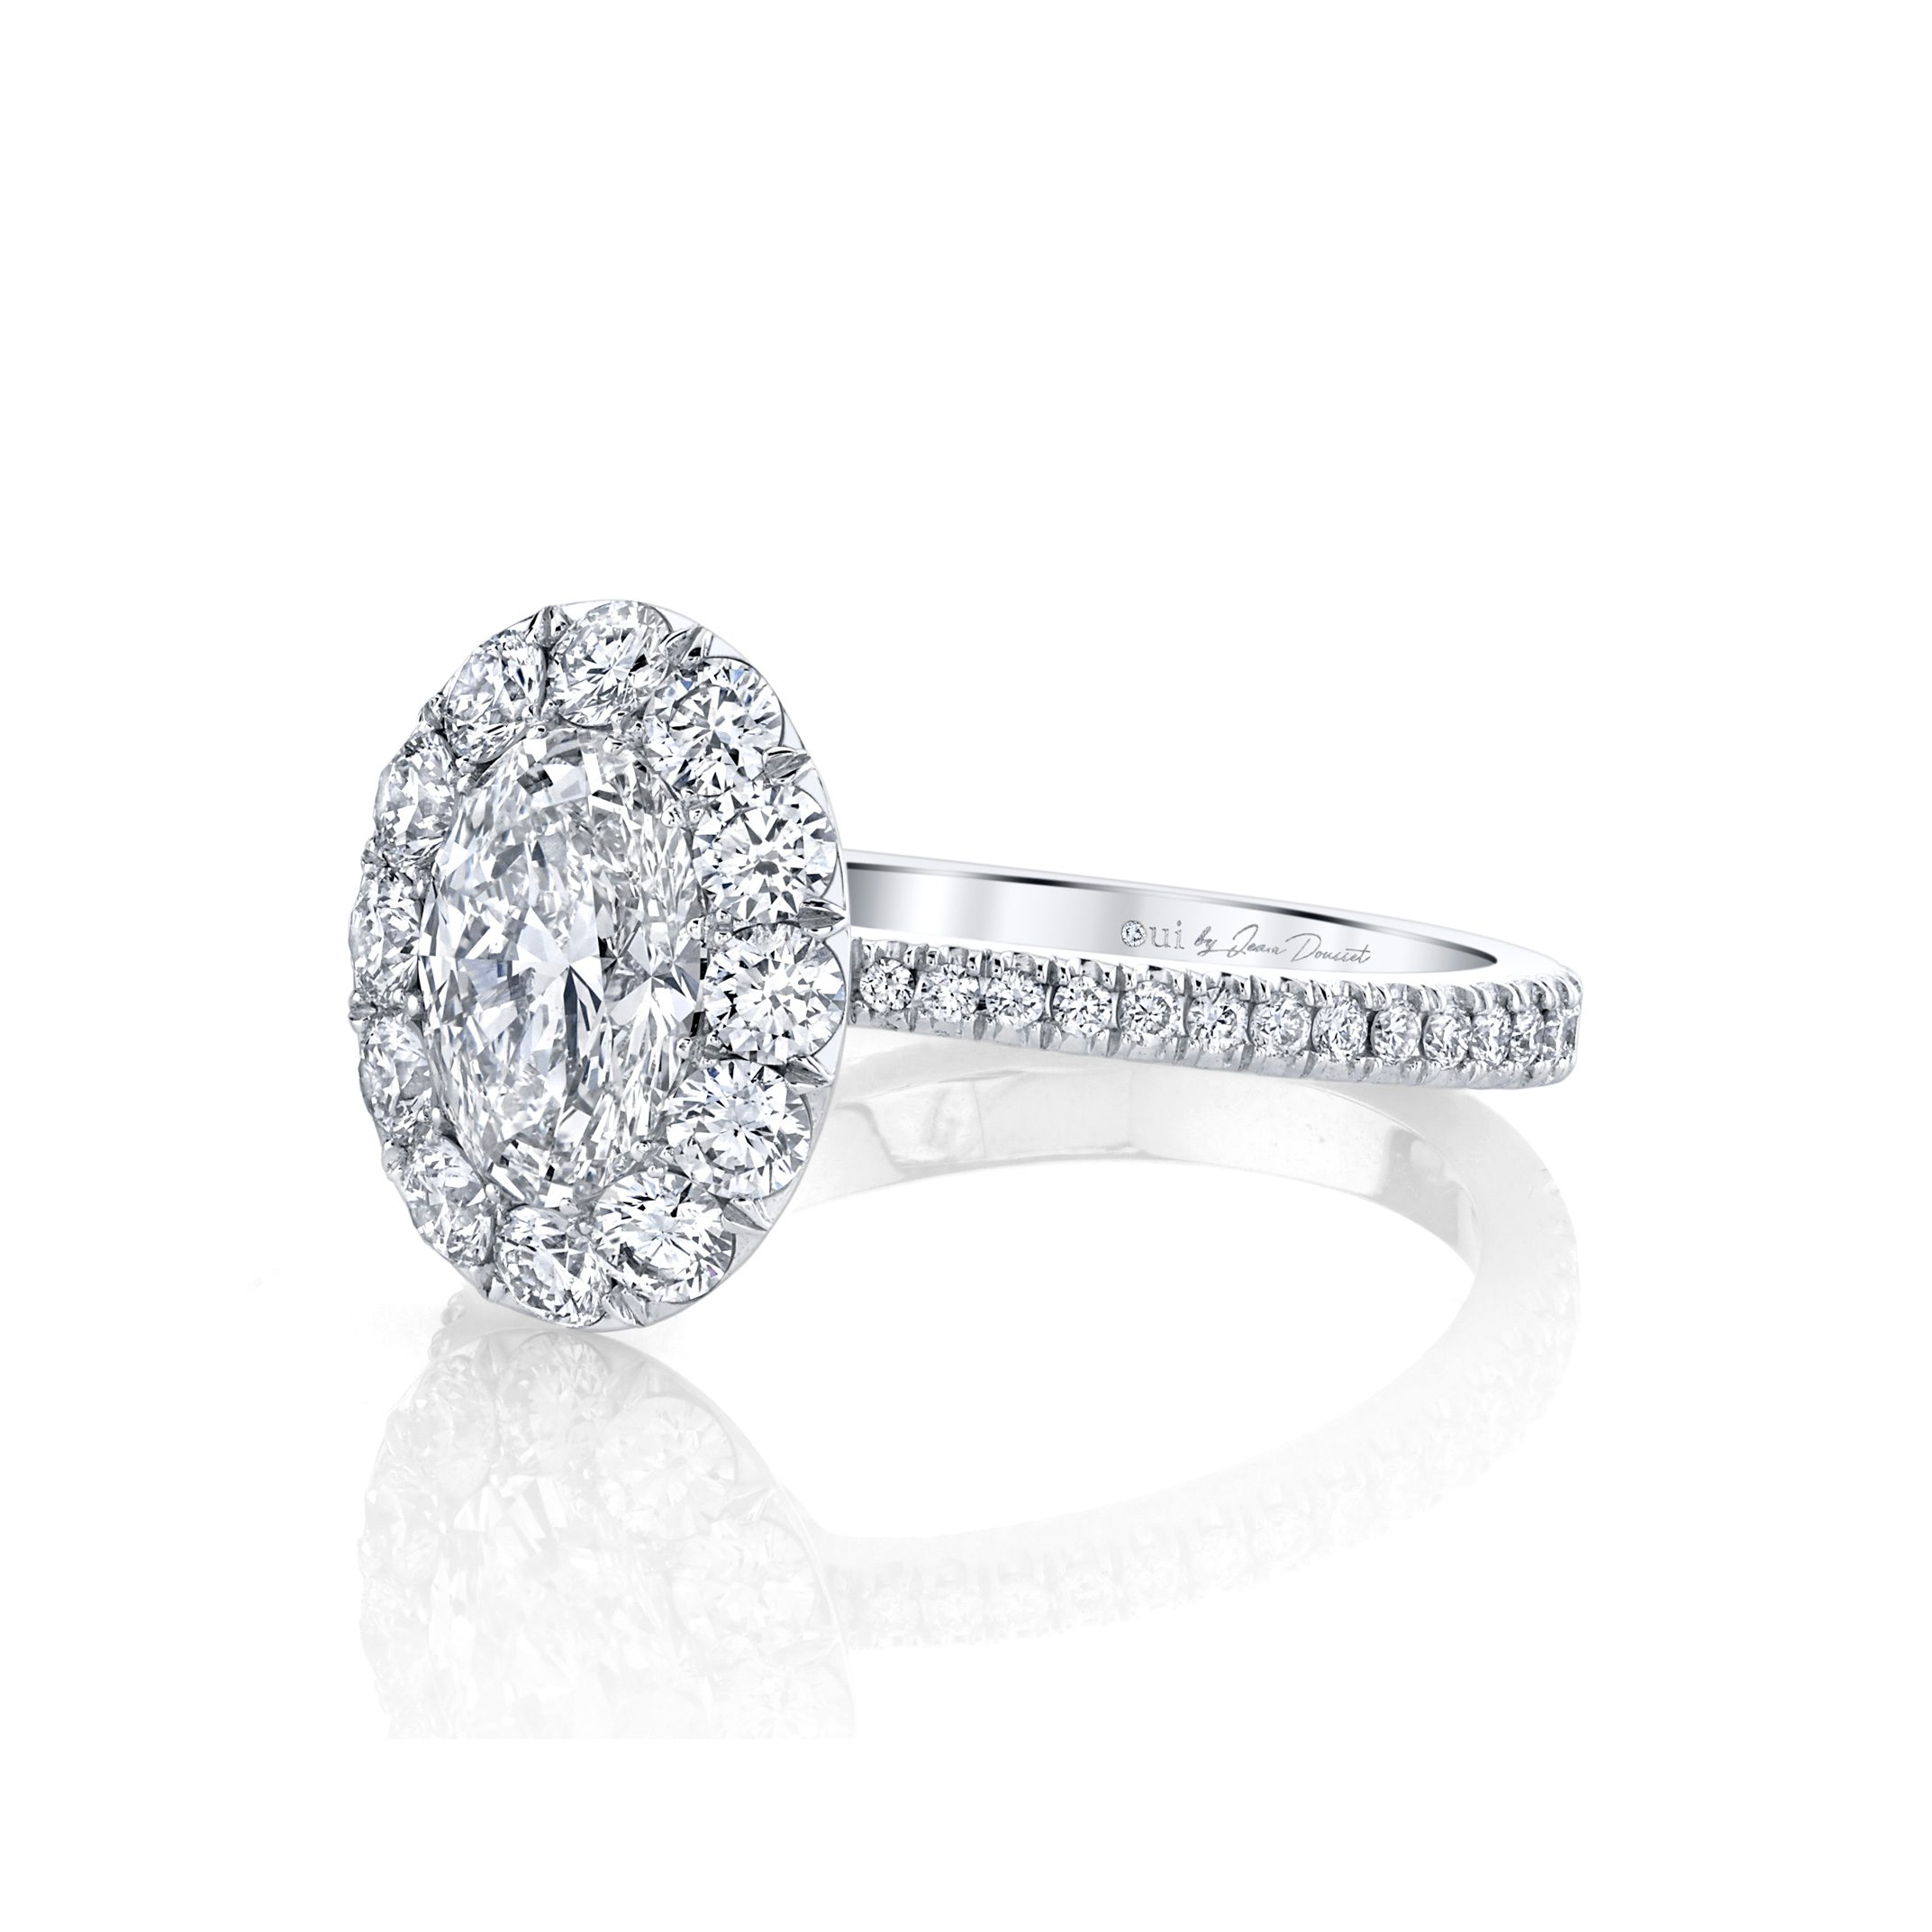 Eloise Oval Seamless Solitaire® Engagement Ring with diamond pavé in 18k White Gold Side View by Oui by Jean Dousset